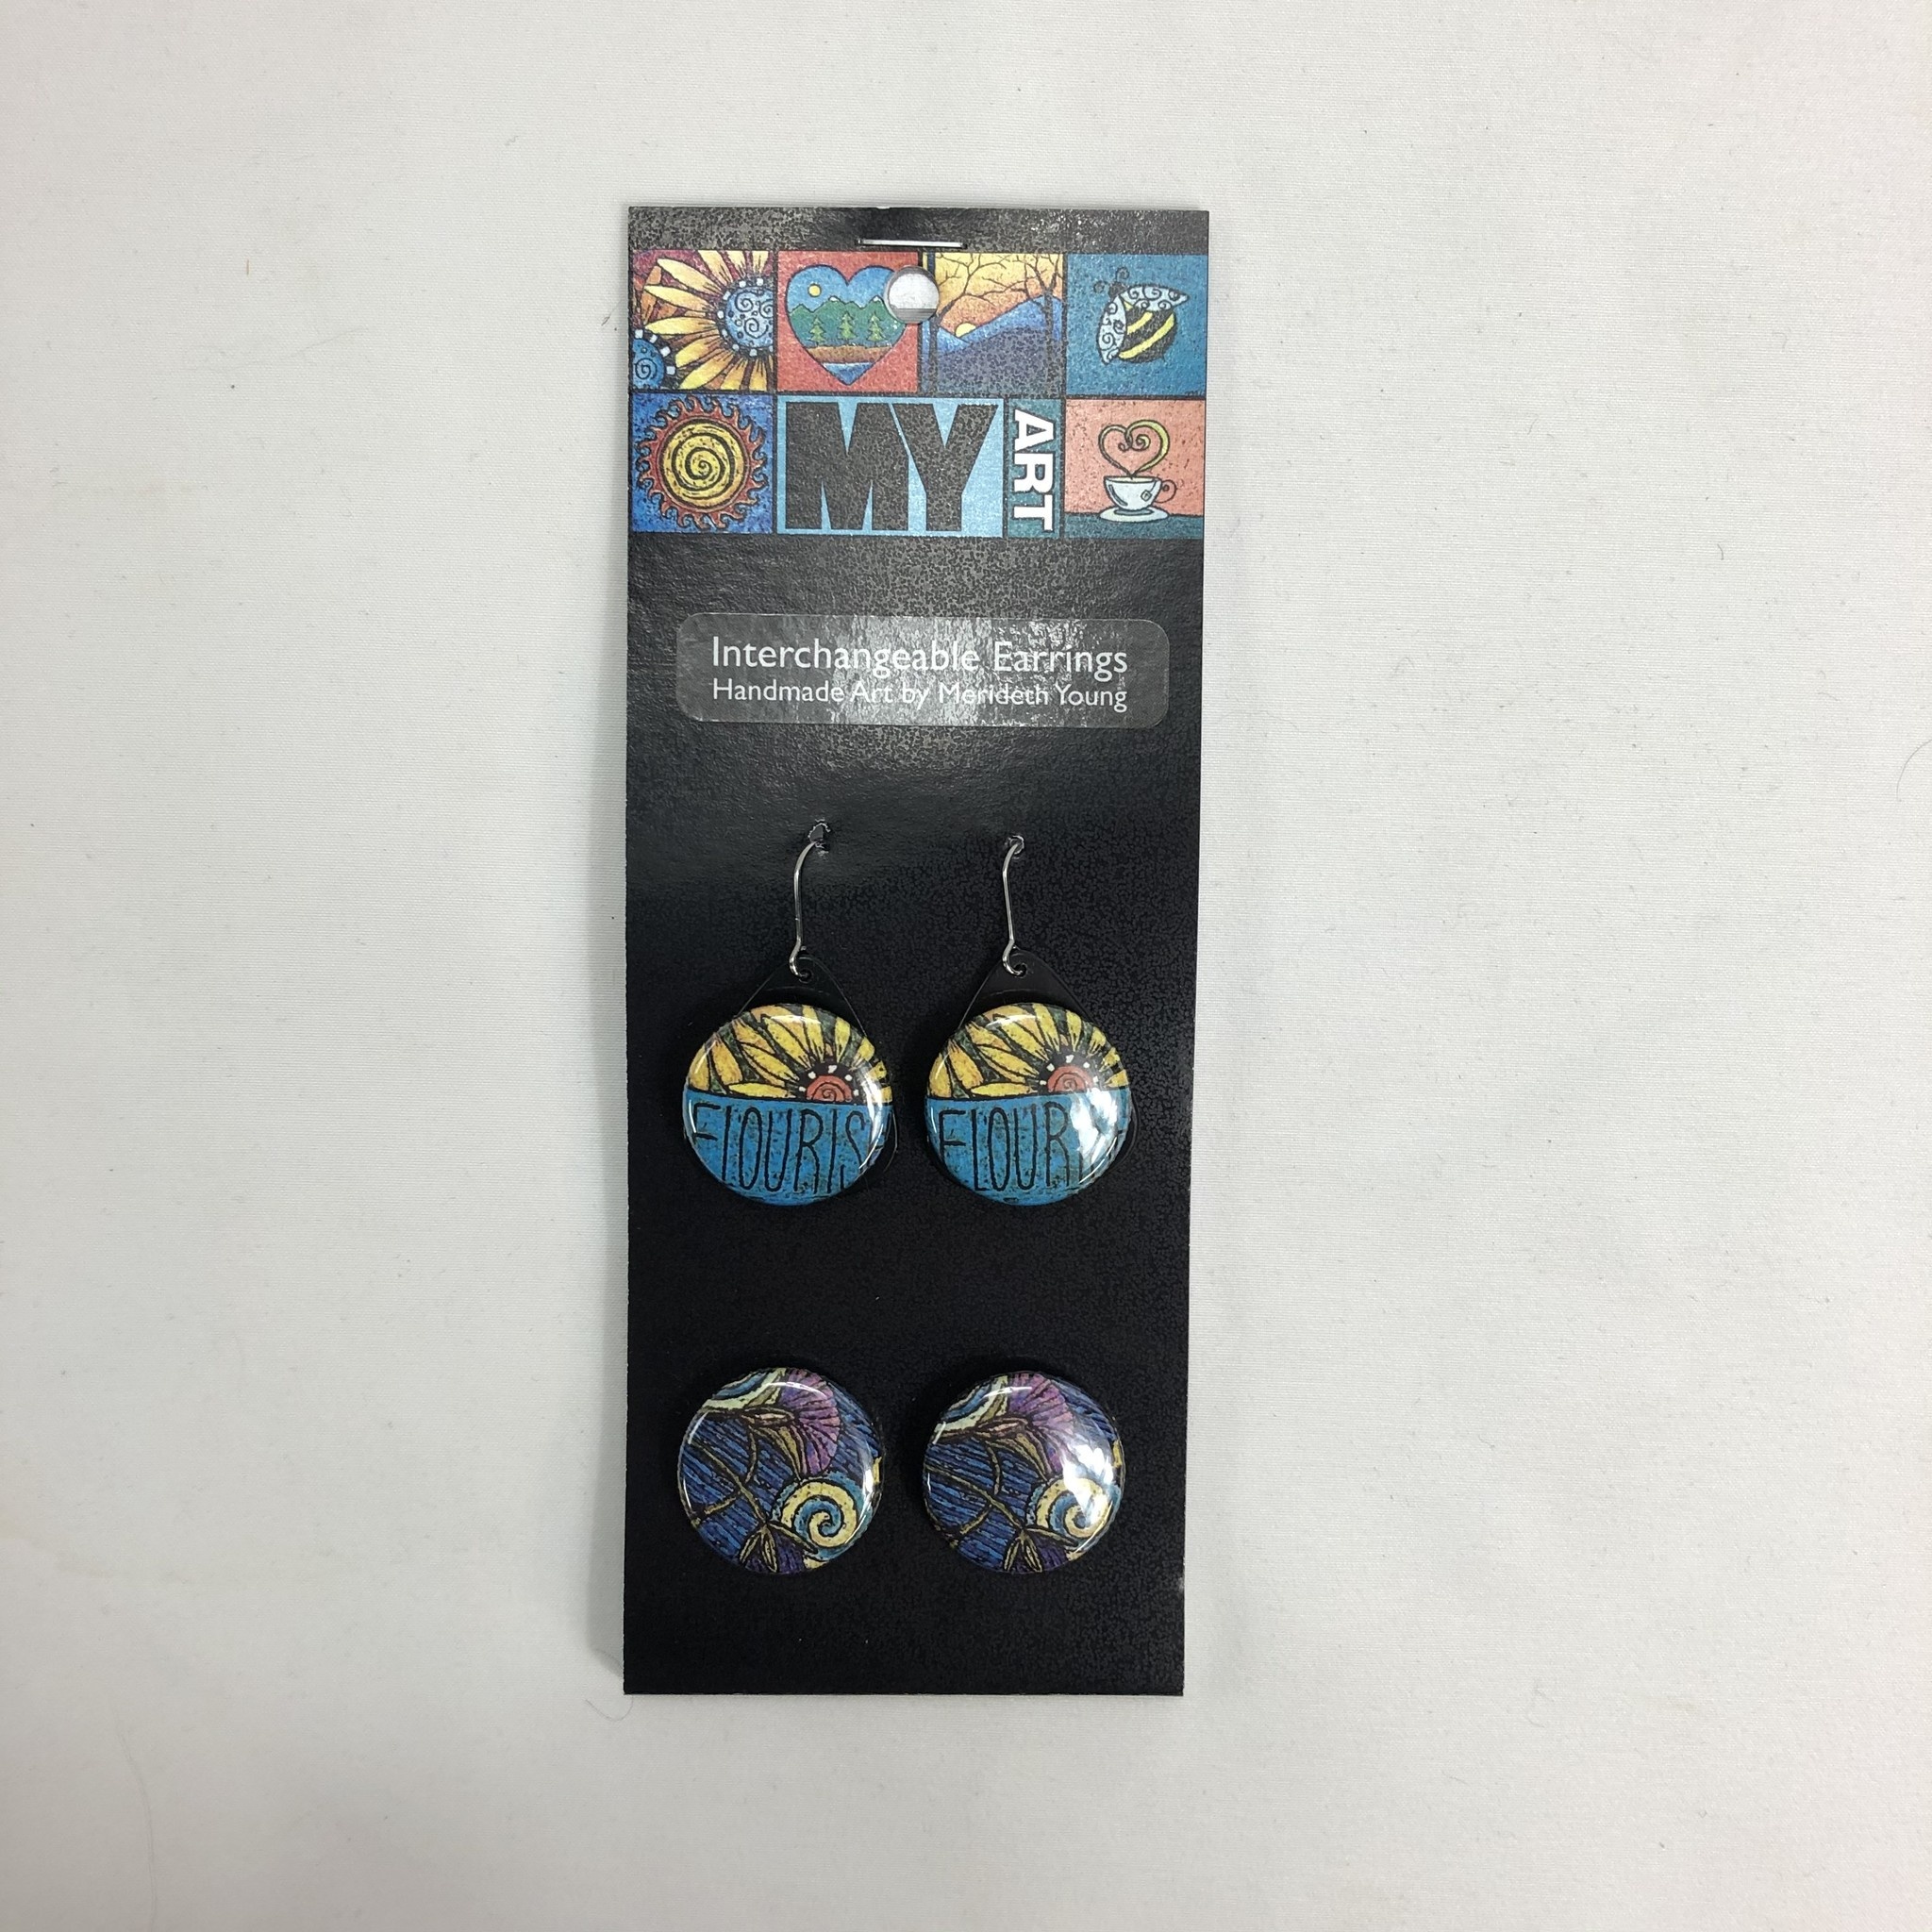 M Young Earrings